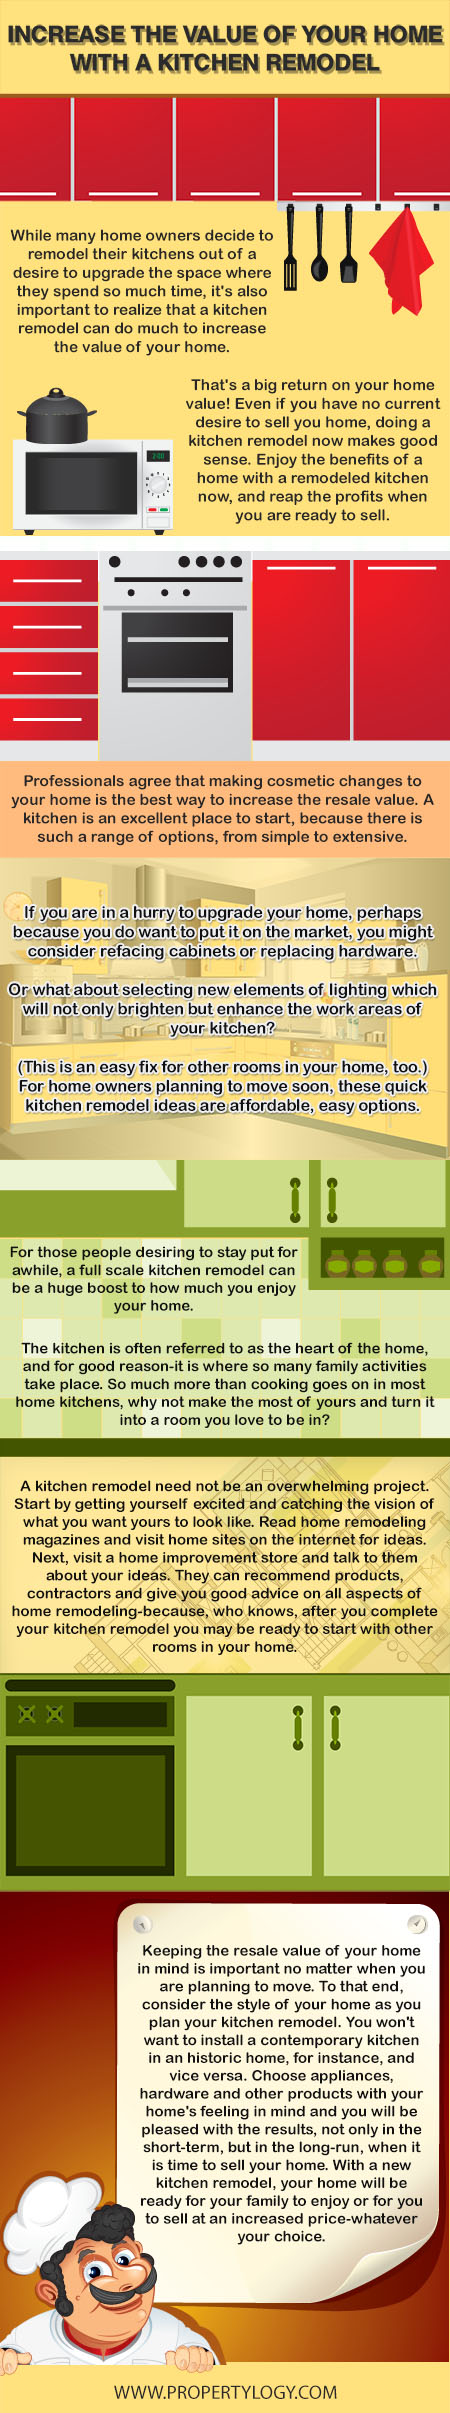 home kitchen renovation value1